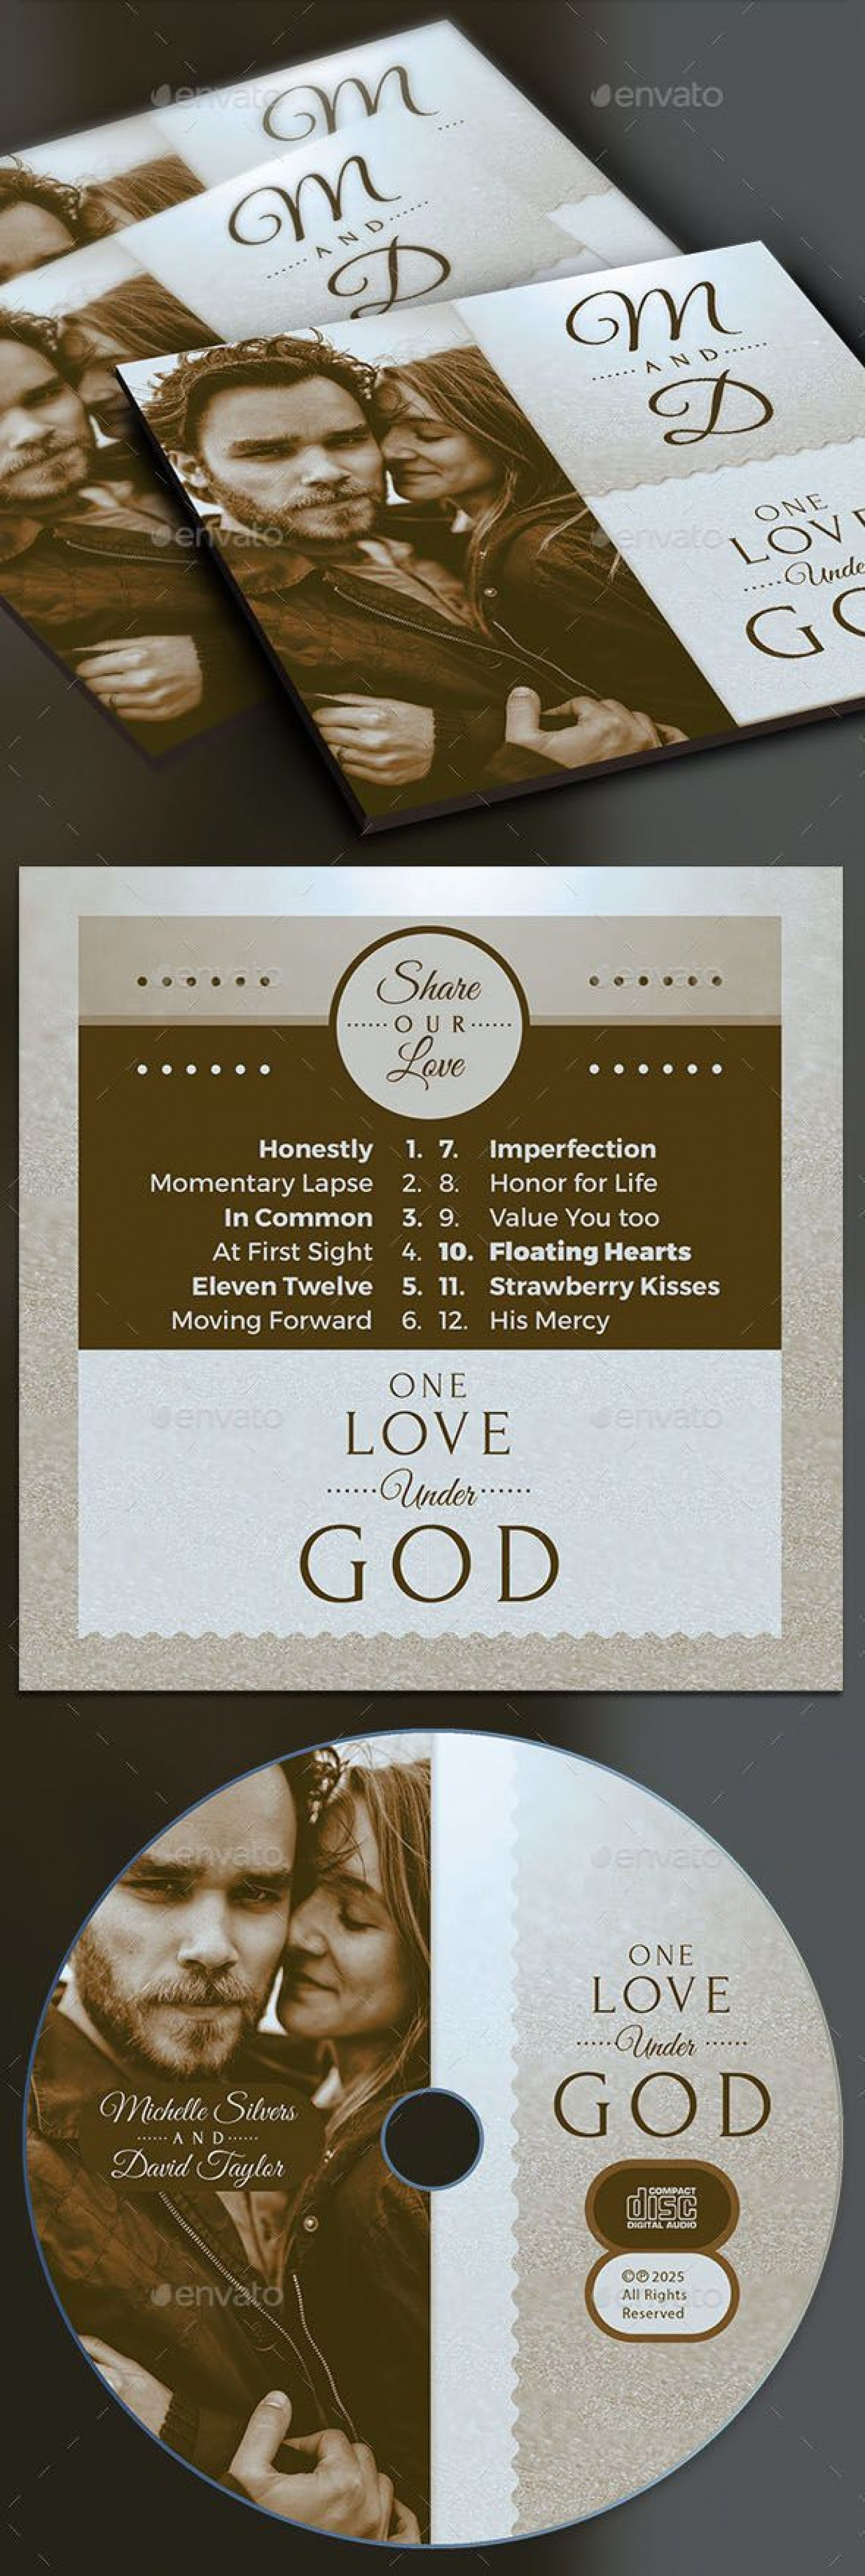 004 Beautiful Wedding Cd Cover Design Template Free Download Example 1400